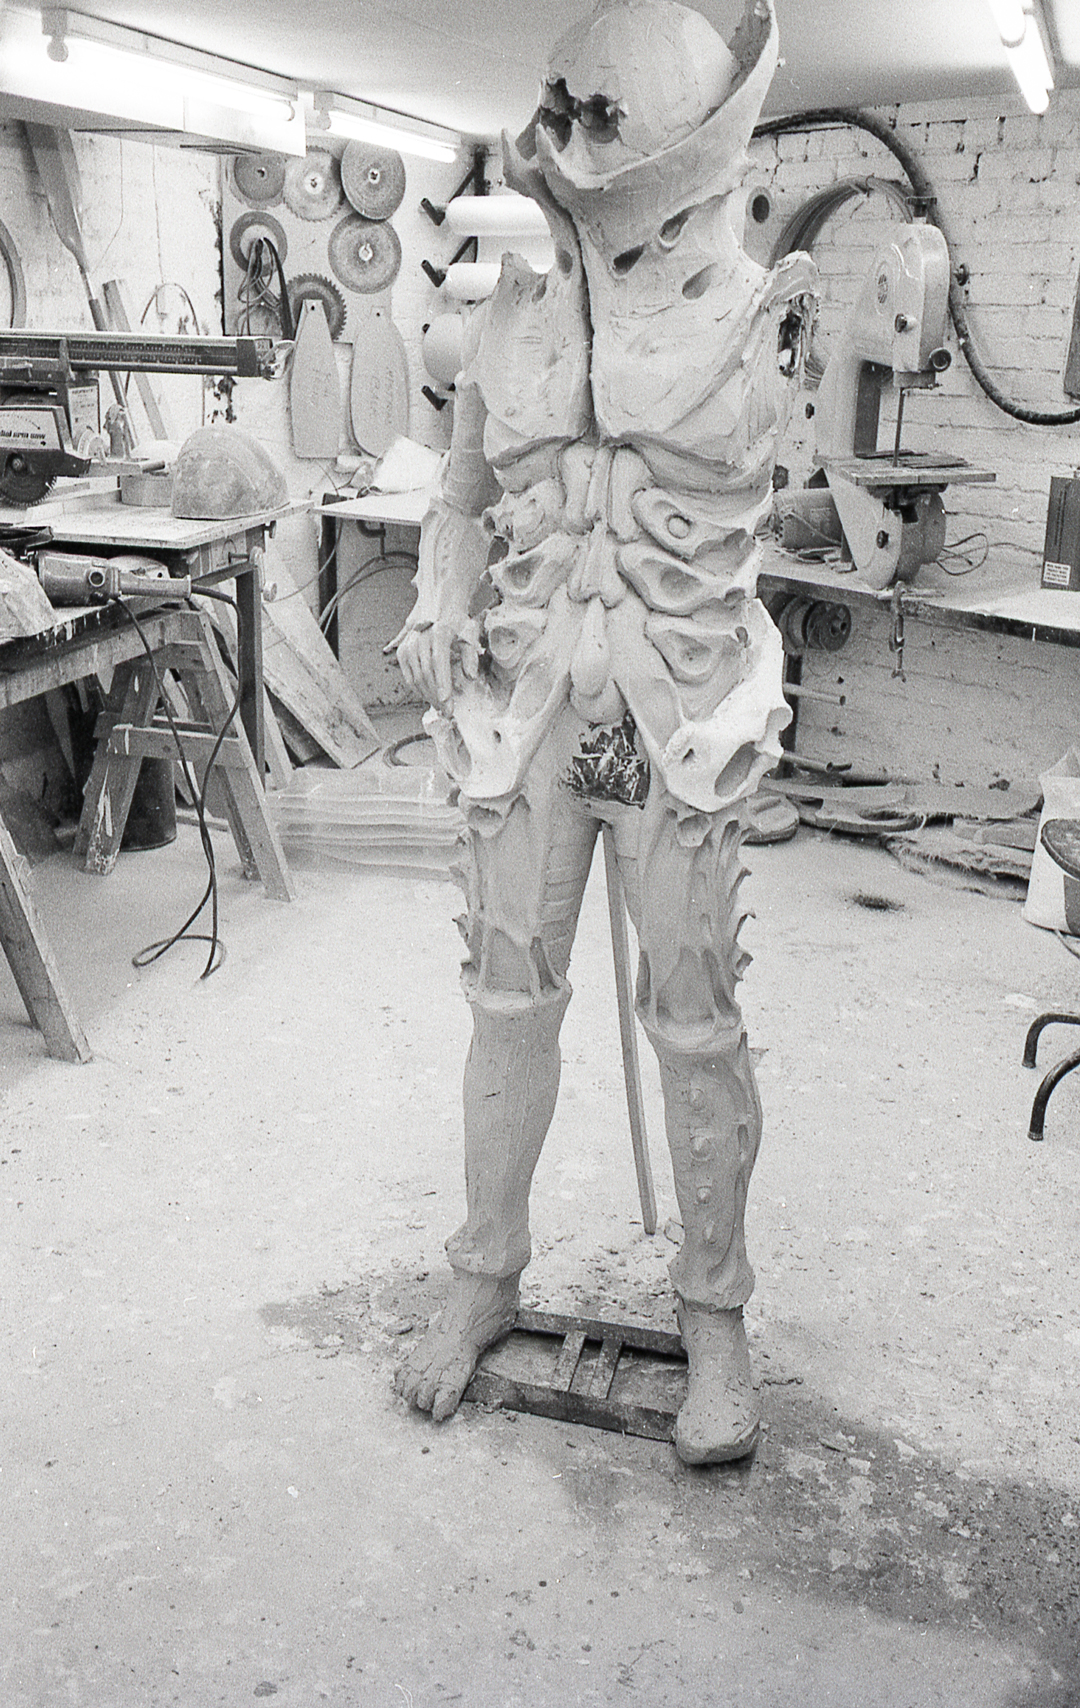 Creating a `Beast` - Andrew sculpted the character in clay over a regular mannequin. The body was then section up to cast plaster moulds to reproduce the surface texture. These were set in a framework with an internal mould face, thus creating a cavity.The framework had clamping devices that allowed Polyurethane cushion foam to be injected into the cavity. The plaster faces of the mould were washed with latex rubber, which coagulated on the surface forming a flexible skin.The result was a body piece that had a durable rubber surface, backed up by a flexible cushion foam.When all joined together, the finished warriors costume not only was durable enough for fighting, but it offered a significant amount of protection for the actors.